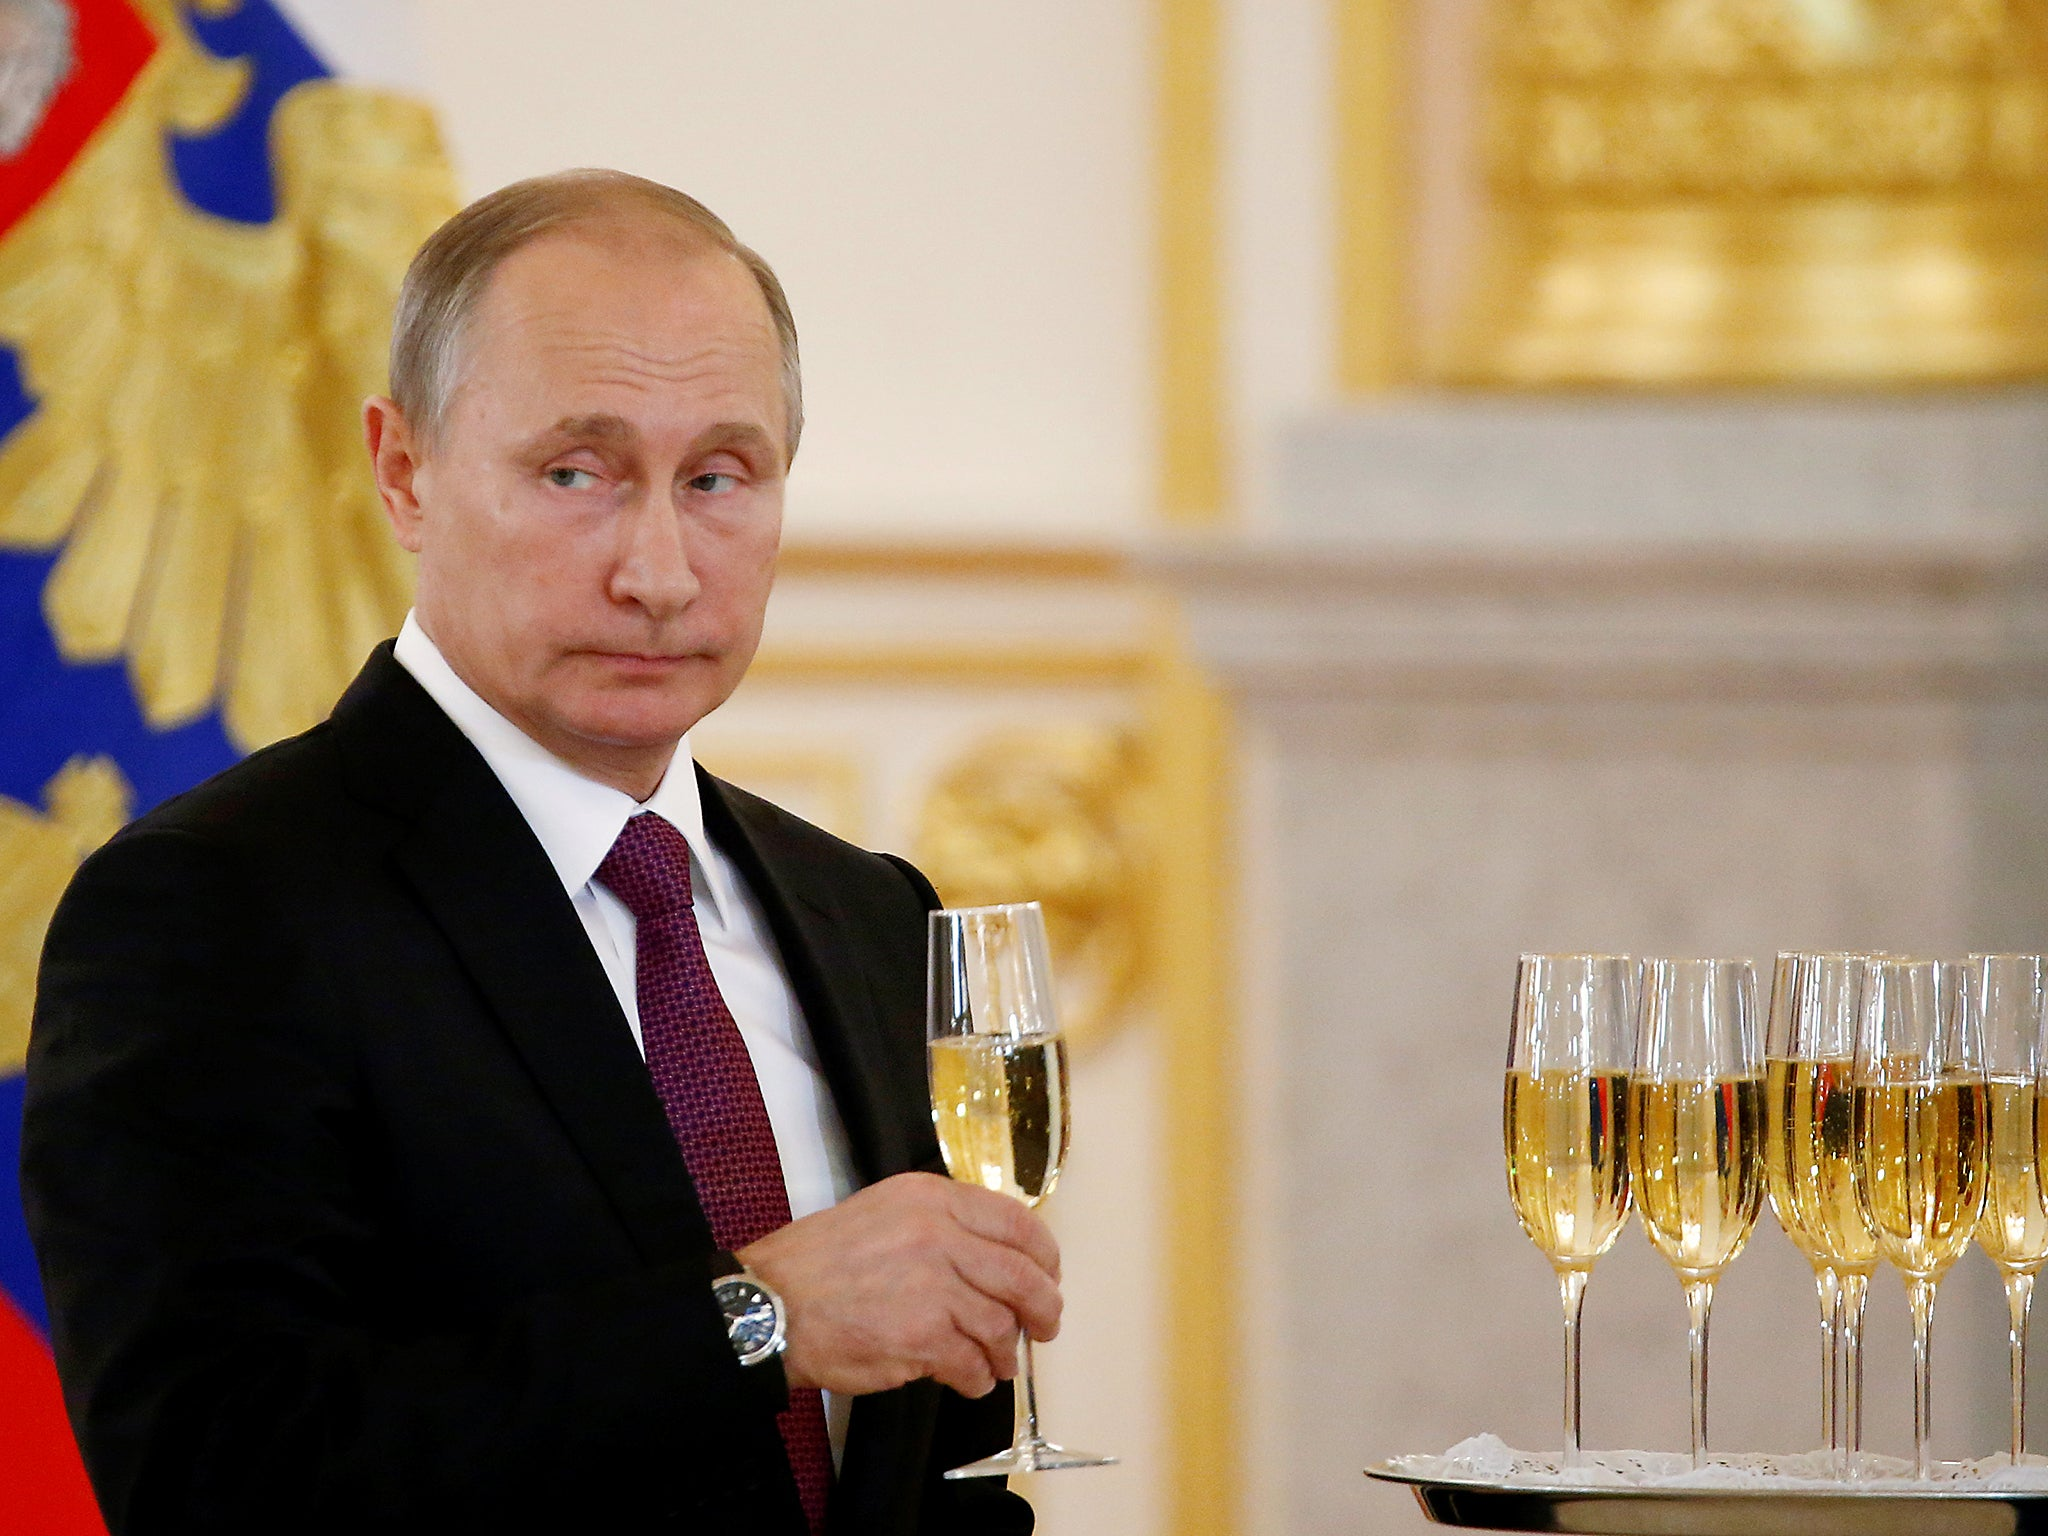 Vladimir Putin says Russian prostitutes are the 'best in the world'